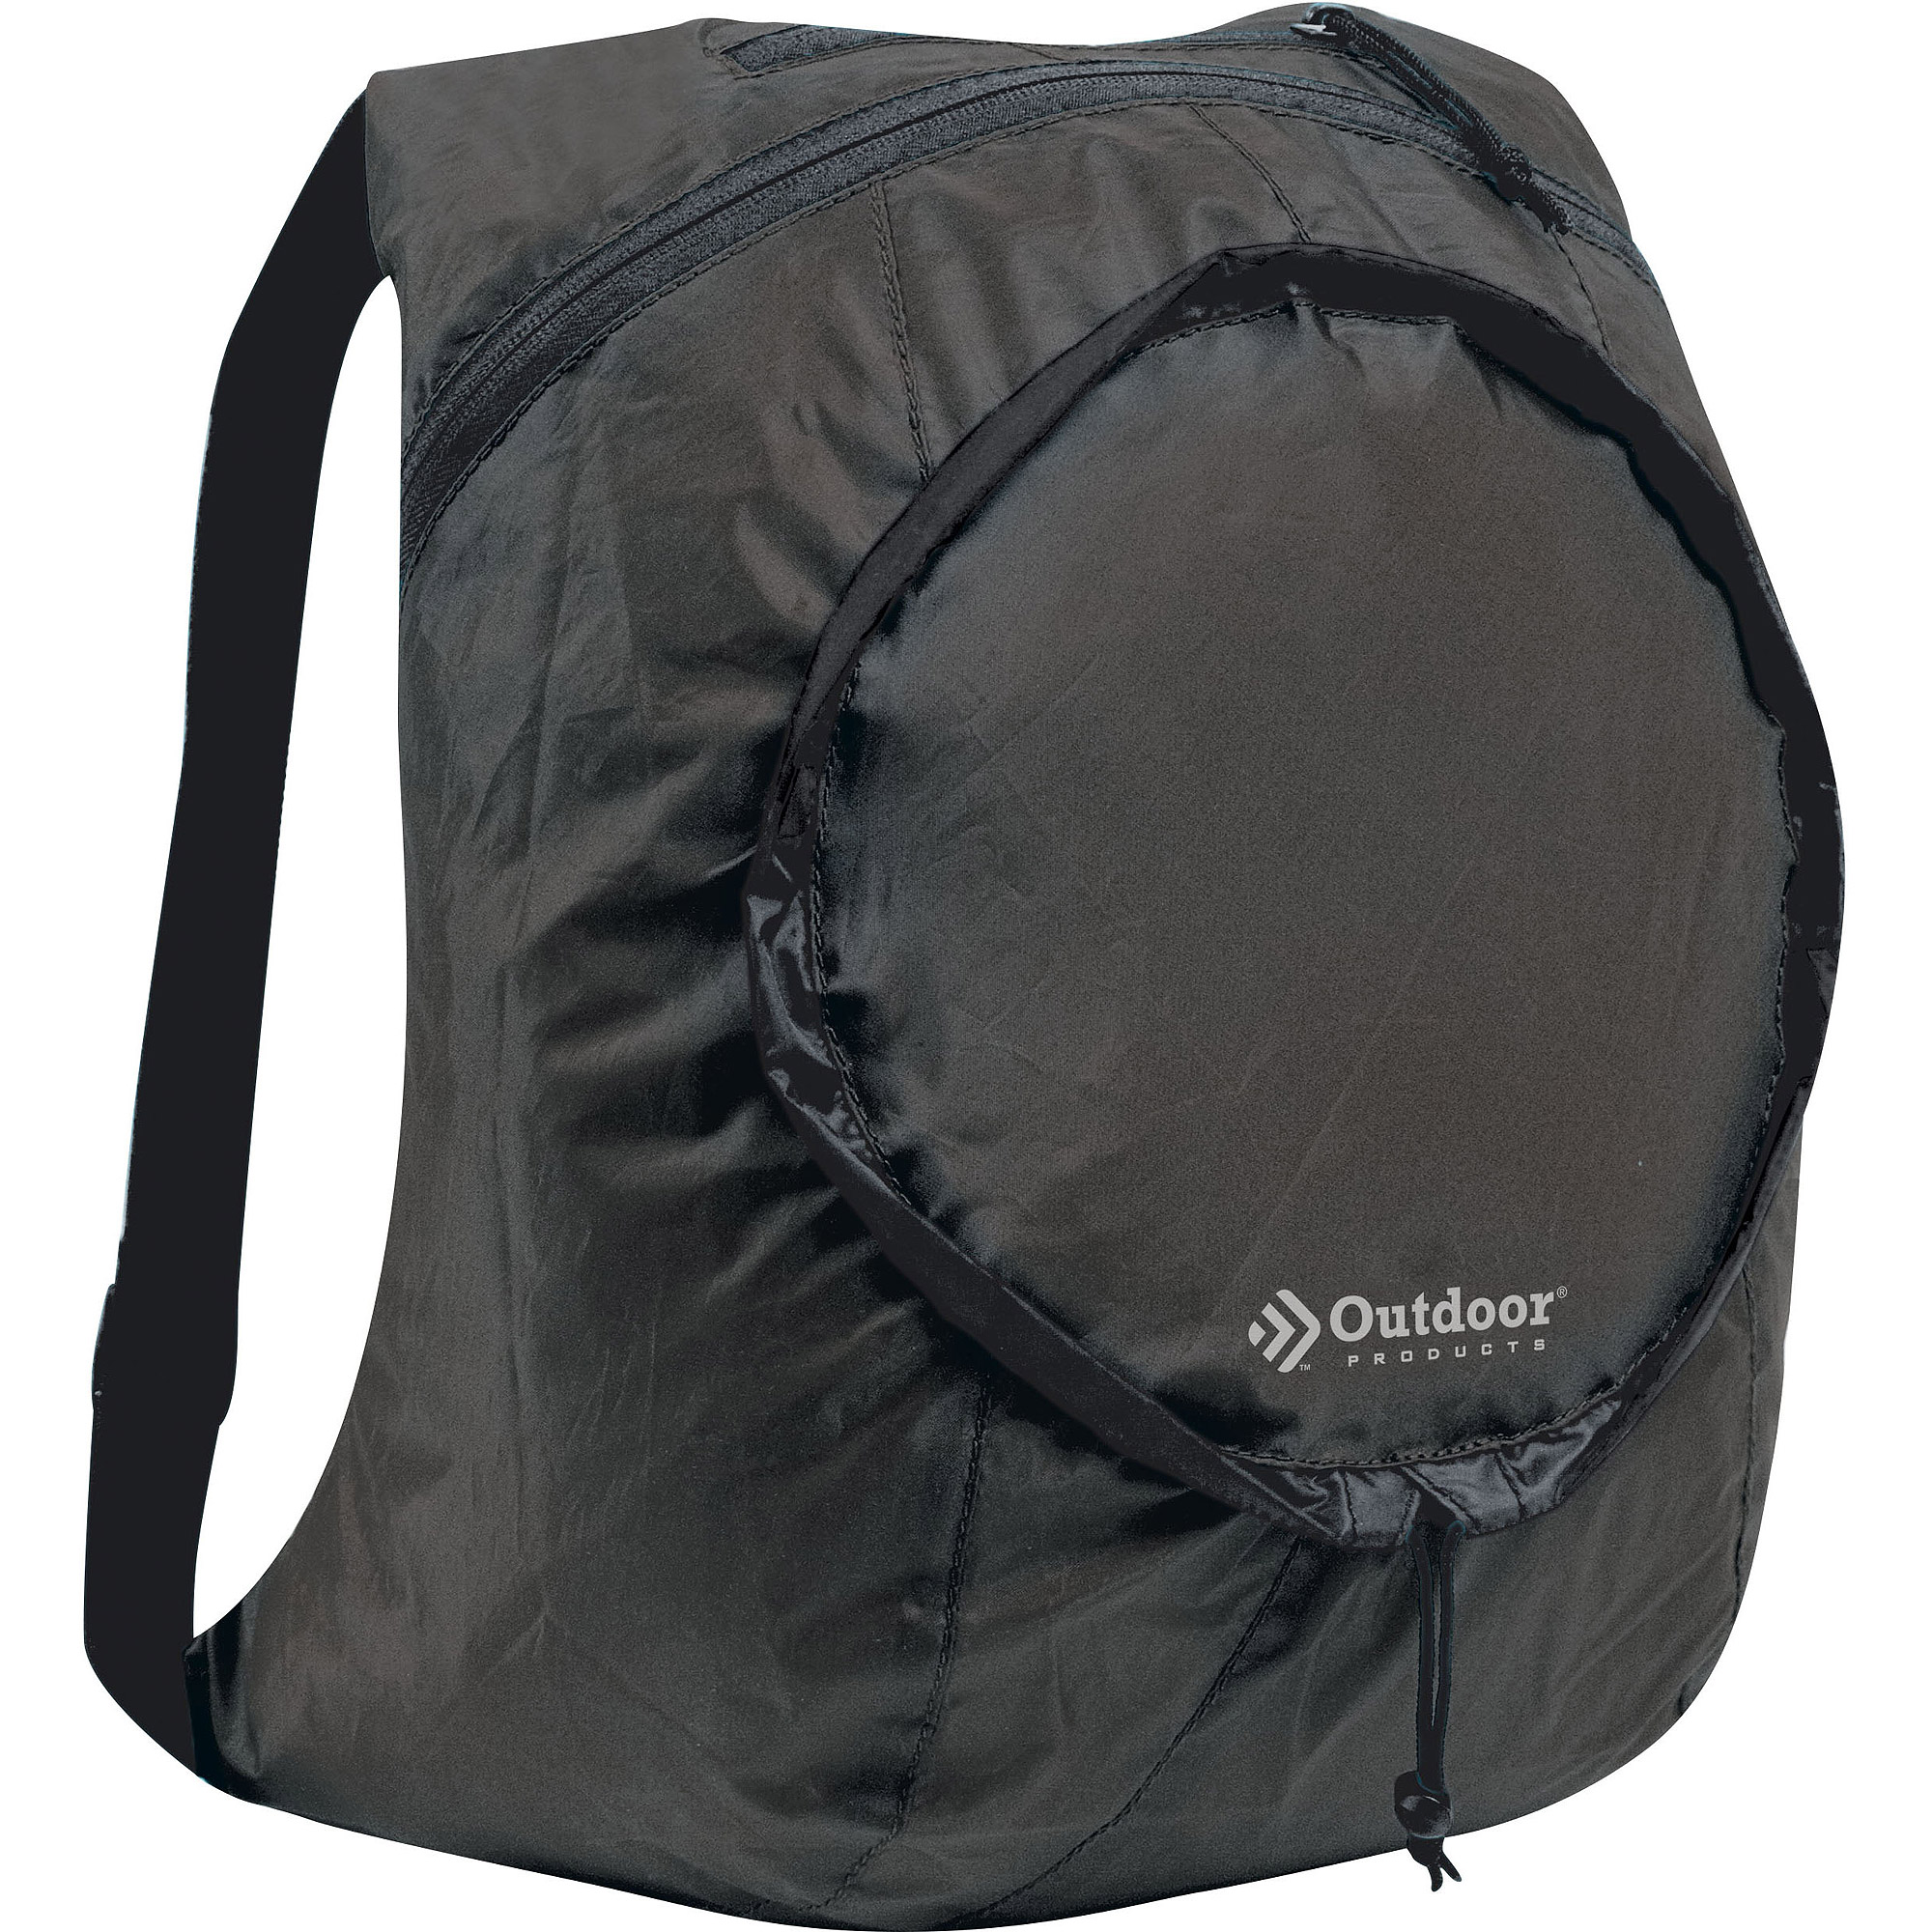 Outdoor Products Packable Daypack, Black